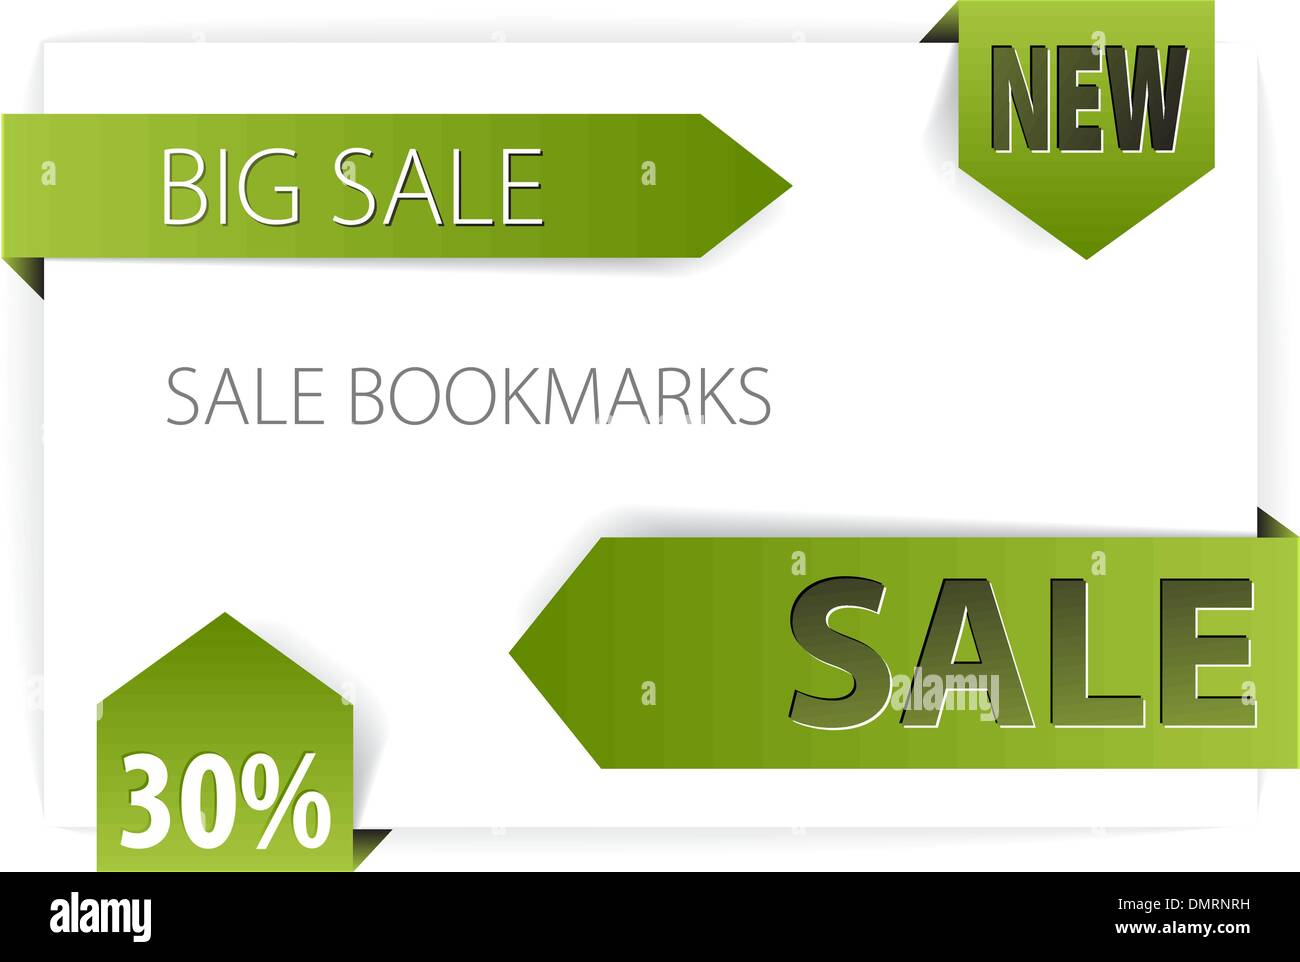 Sale announcements (tags, badges) - Stock Image